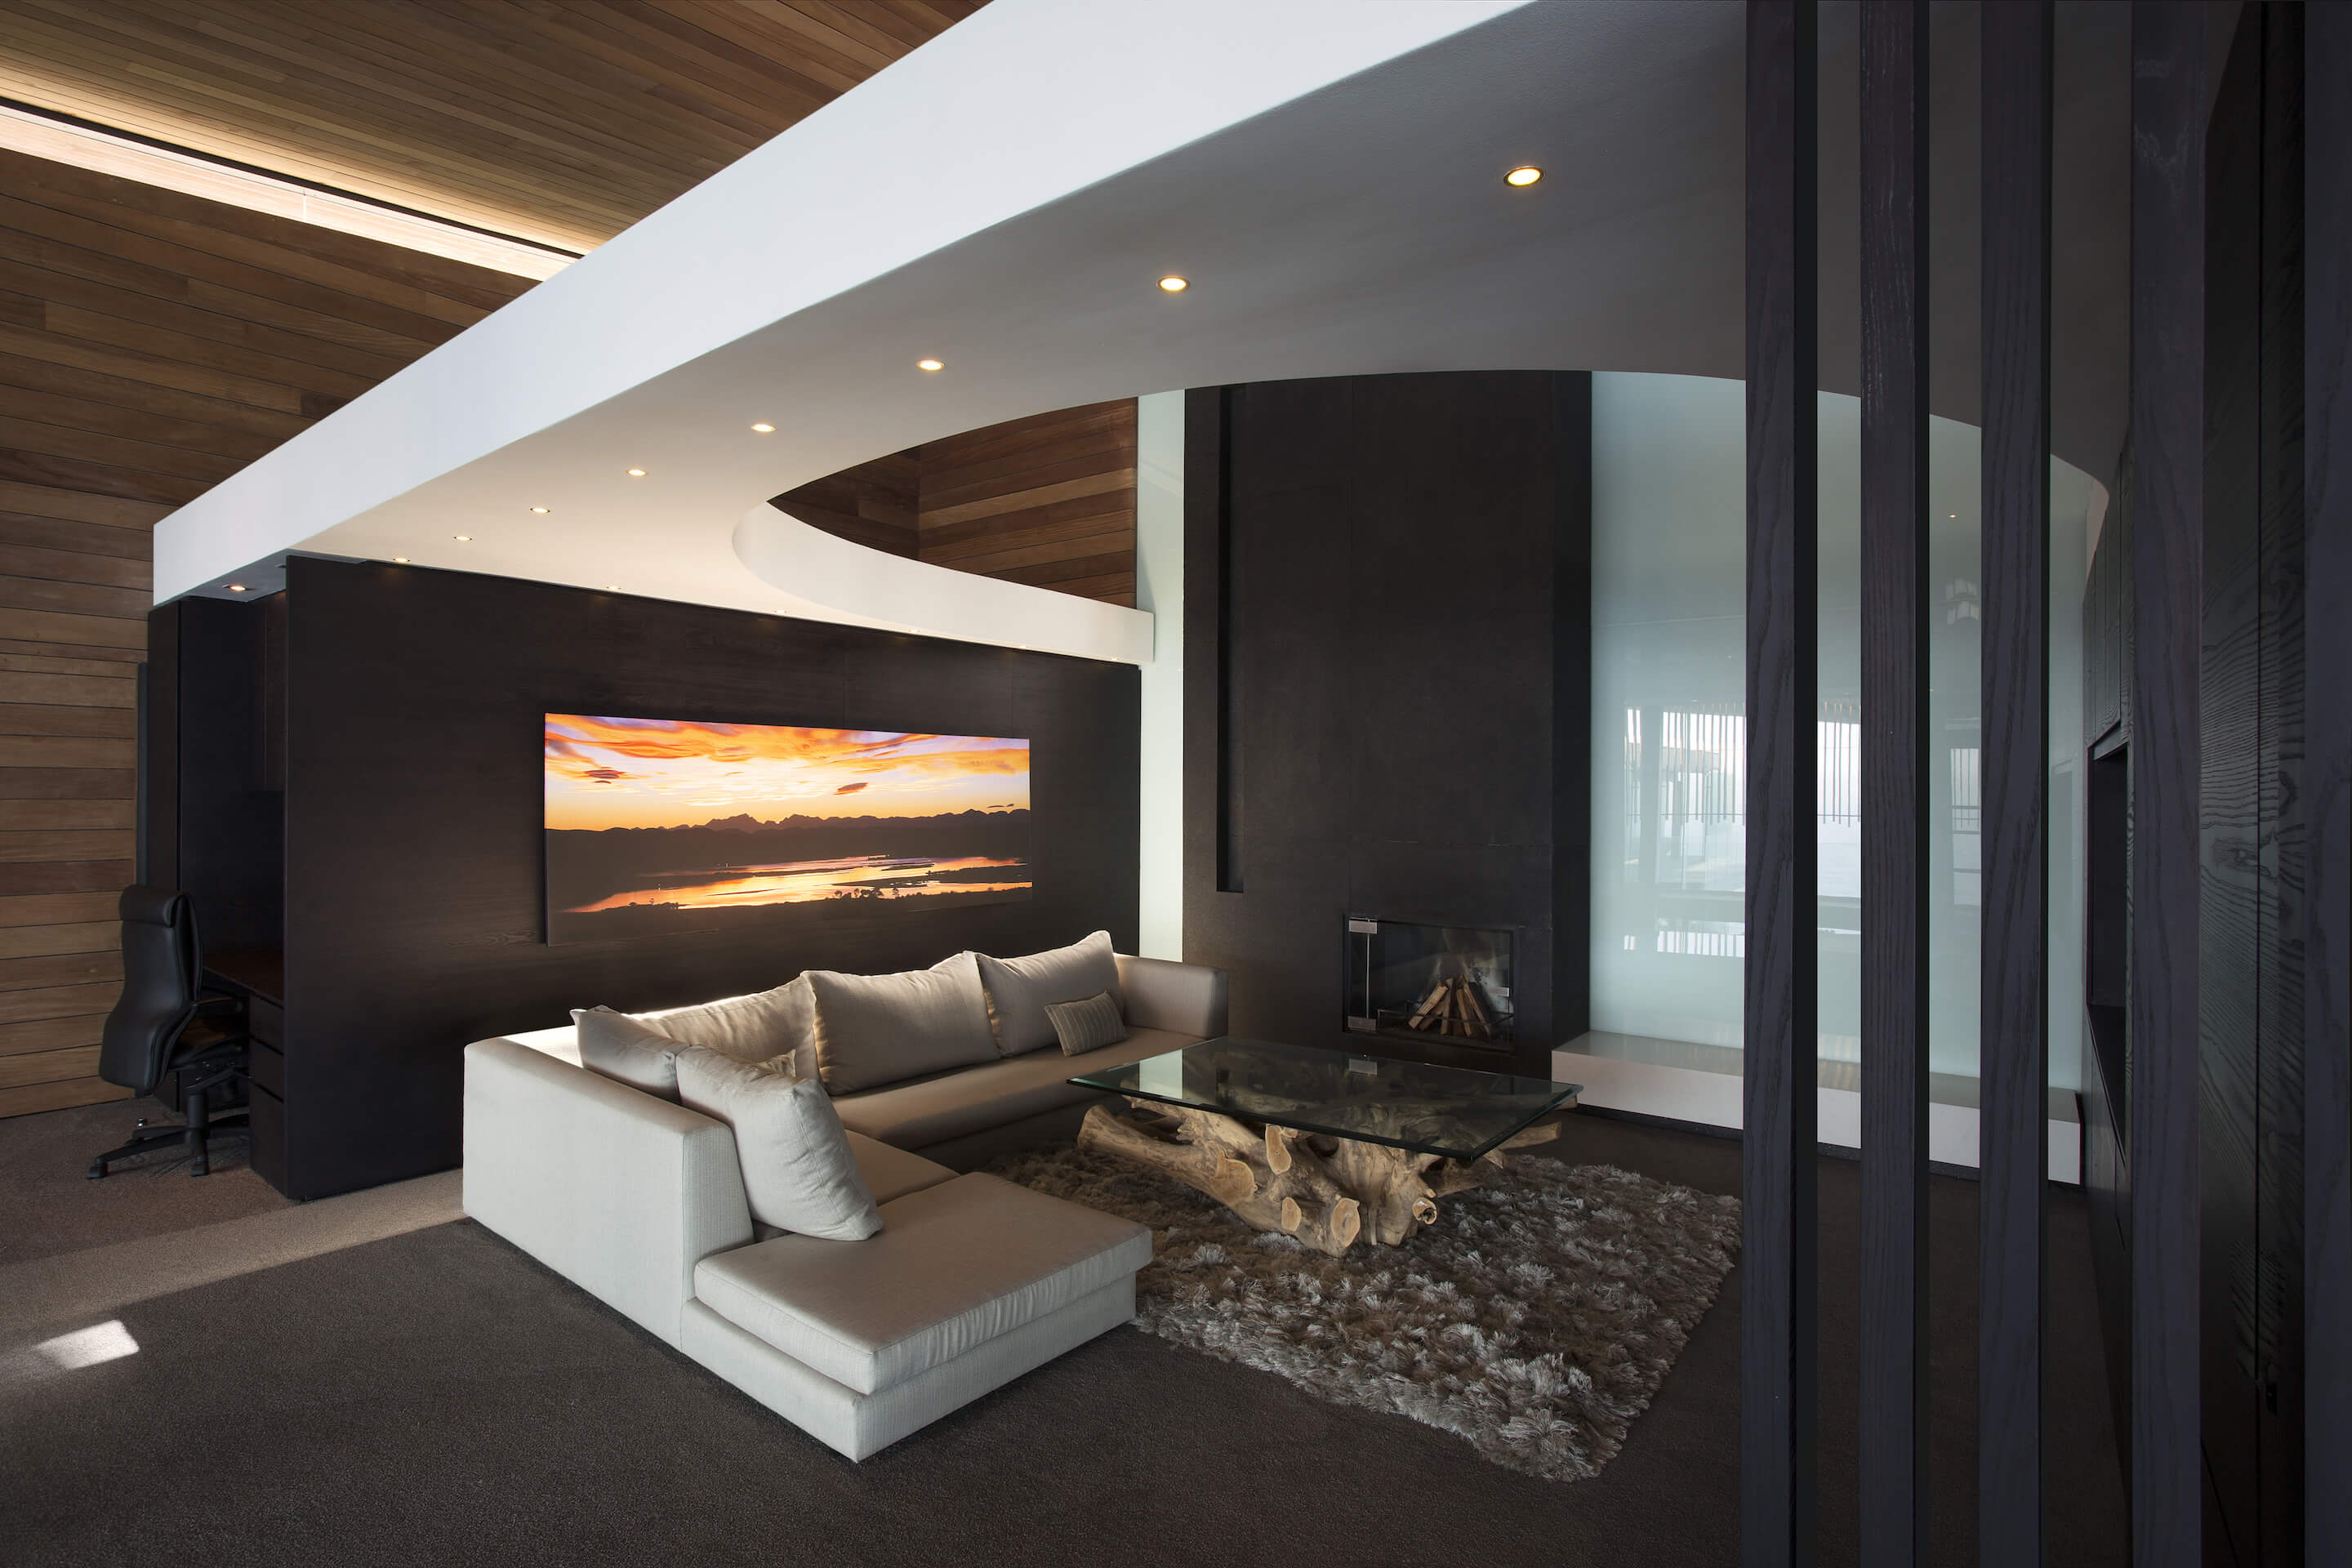 At the center of the upstairs area, we see this cozy space standing below a circular cut white ceiling piece, surrounded by dark stained wood. Small fireplace built into far wall is complemented by large sunset artwork and log-style, glass-topped coffee table.